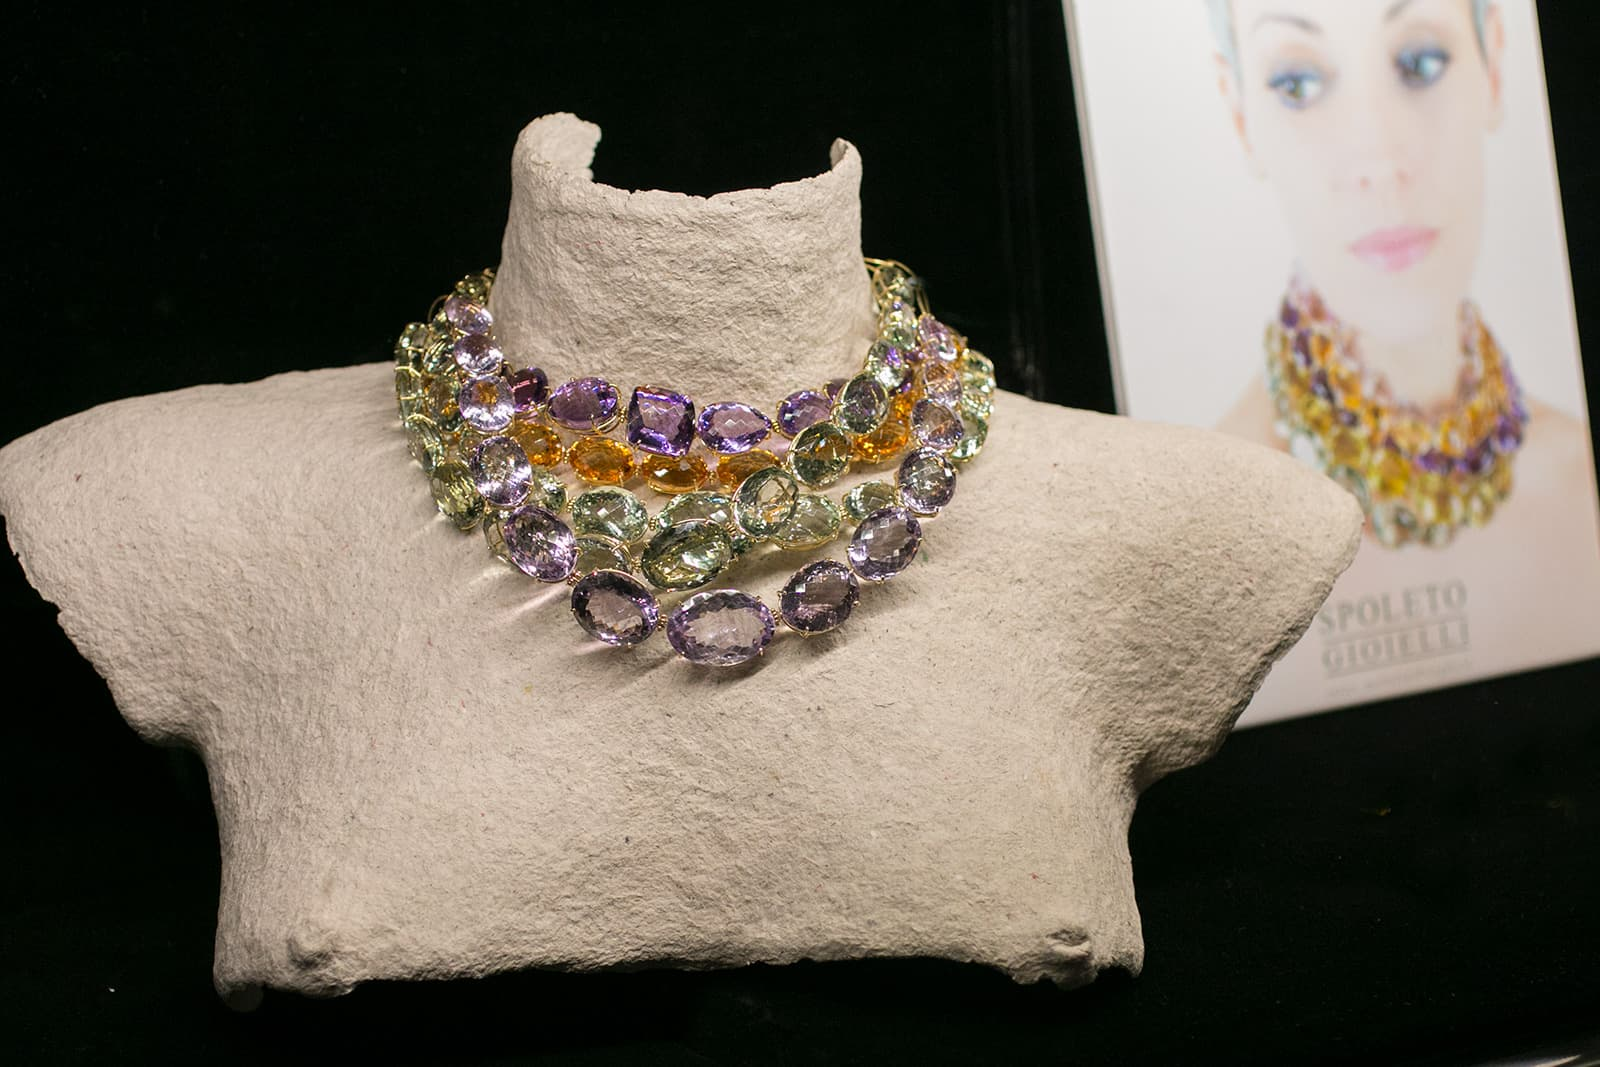 Spoleto Gioielli necklaces with amethysts, prasiolites and citrines in yellow gold